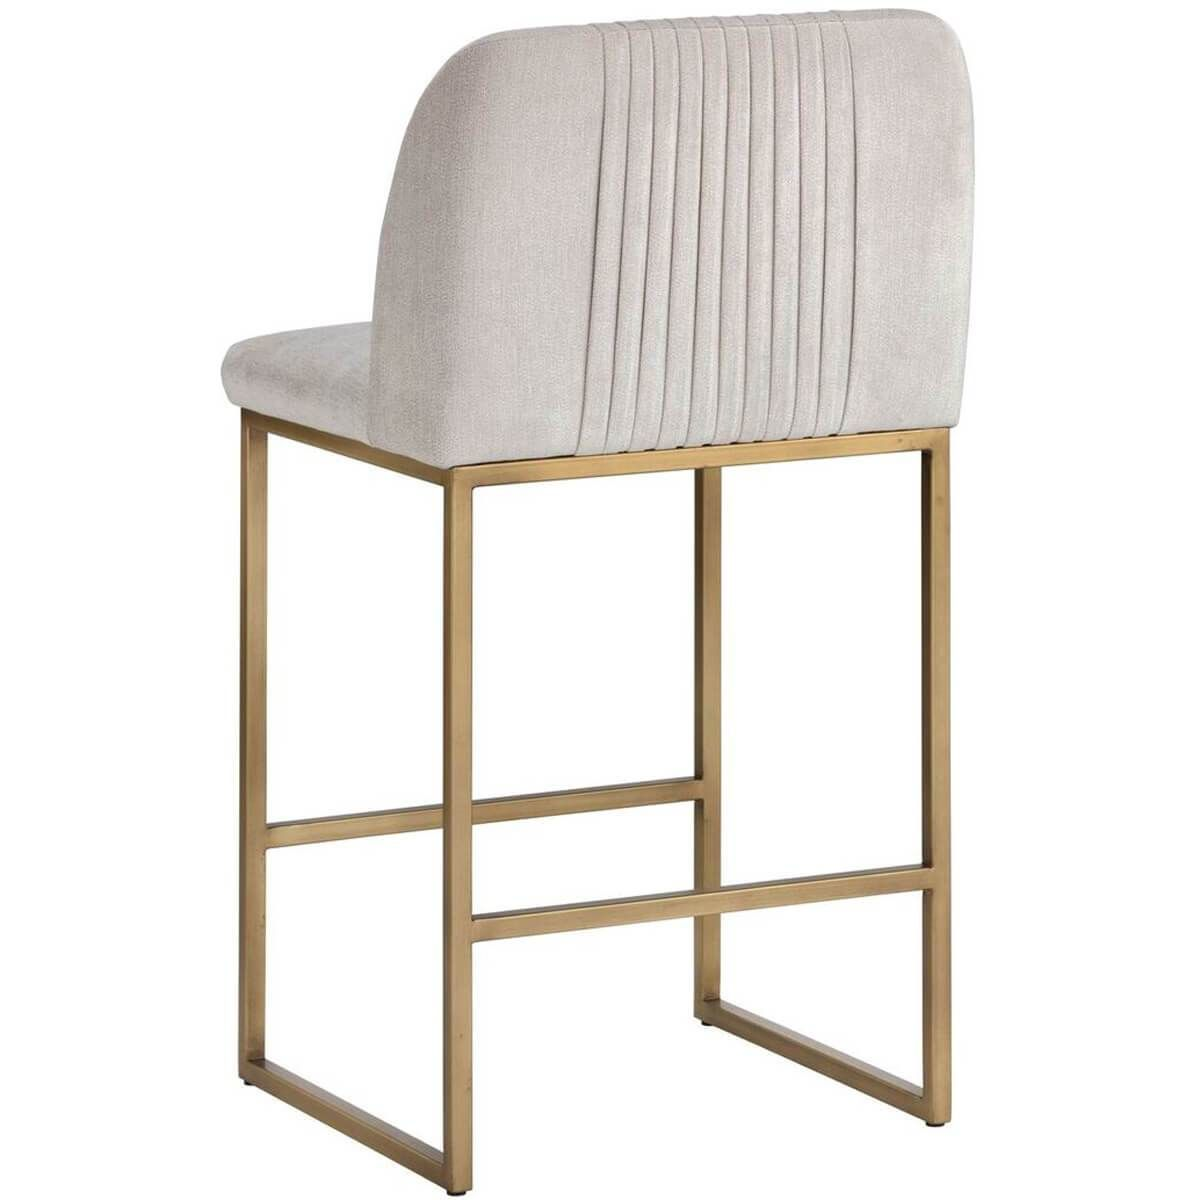 Nevin Counter Stool Polo Club Muslin In 2021 Counter Stools Modern Counter Stools Stool